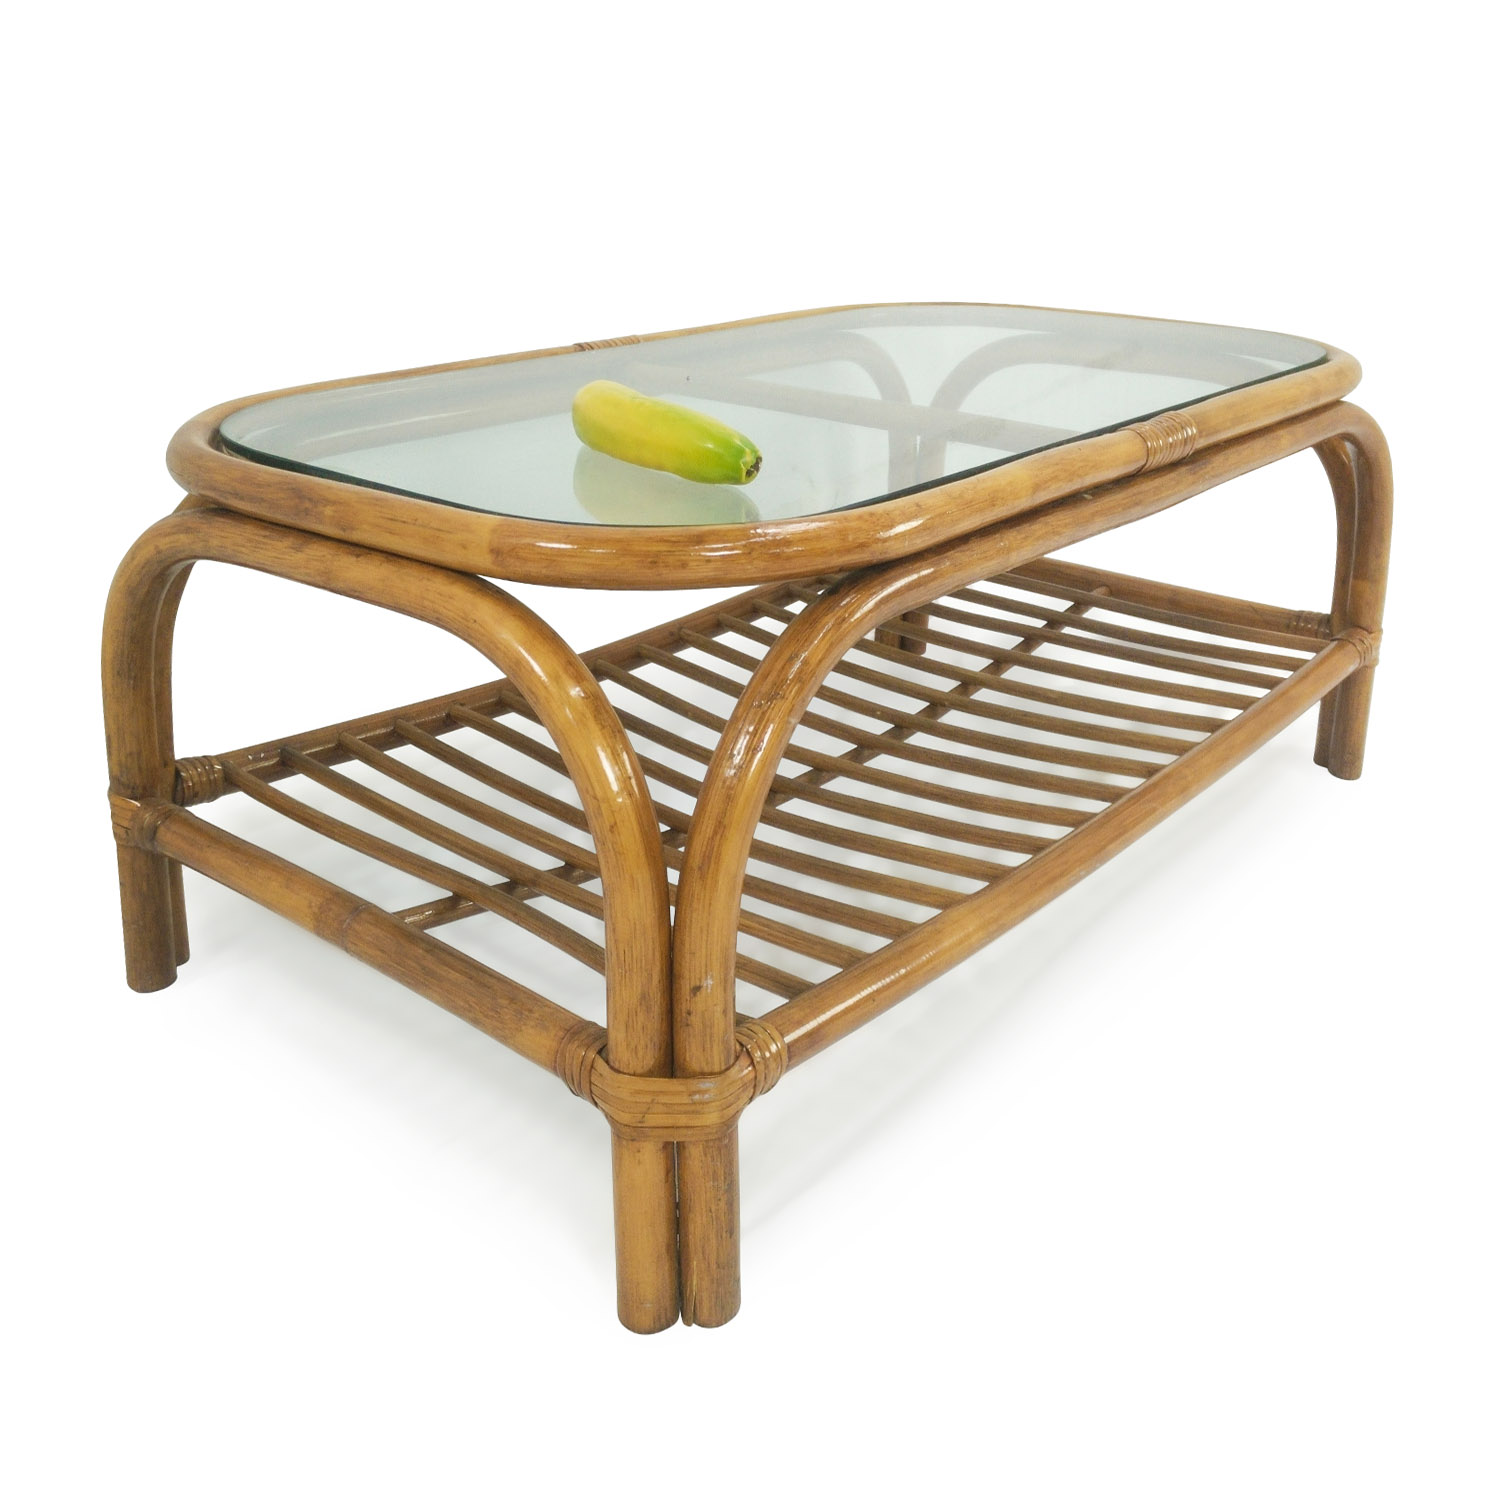 Glass Coffee Table Images.80 Off Glass Top Bamboo Coffee Table Tables